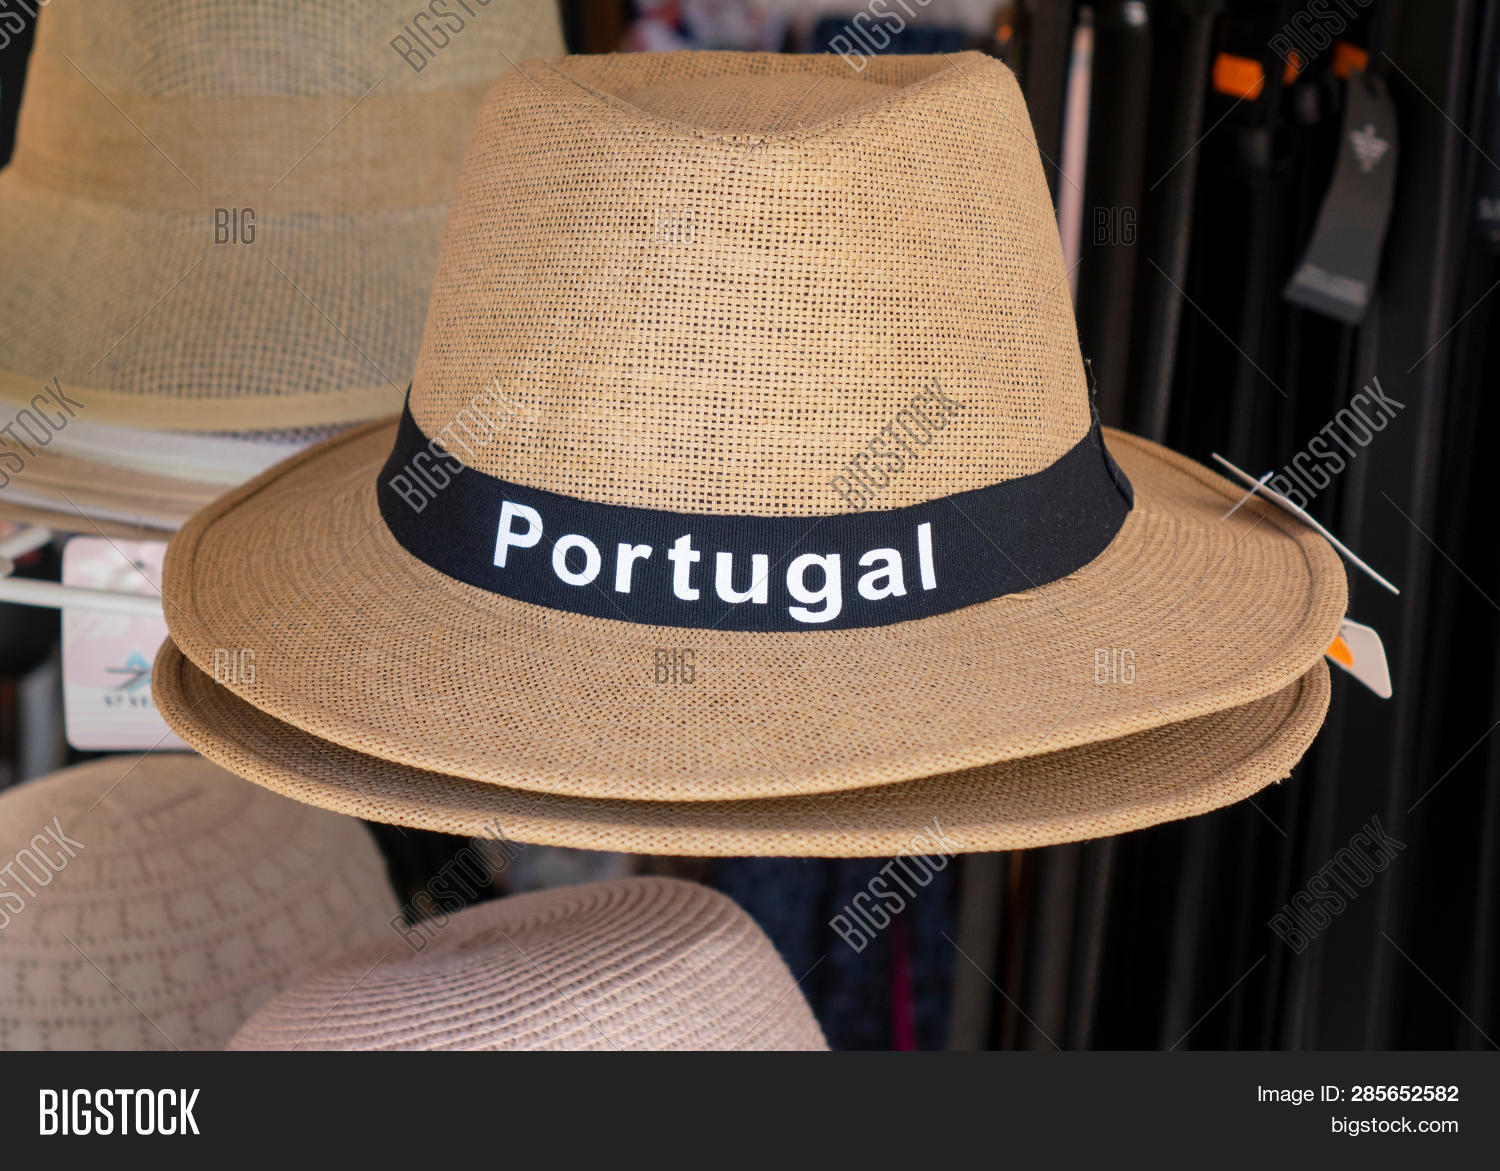 26e0eaf4521446 A Straw Panama Style Souvenir Sun Hat For Sale With Portugal On The Front  Display In